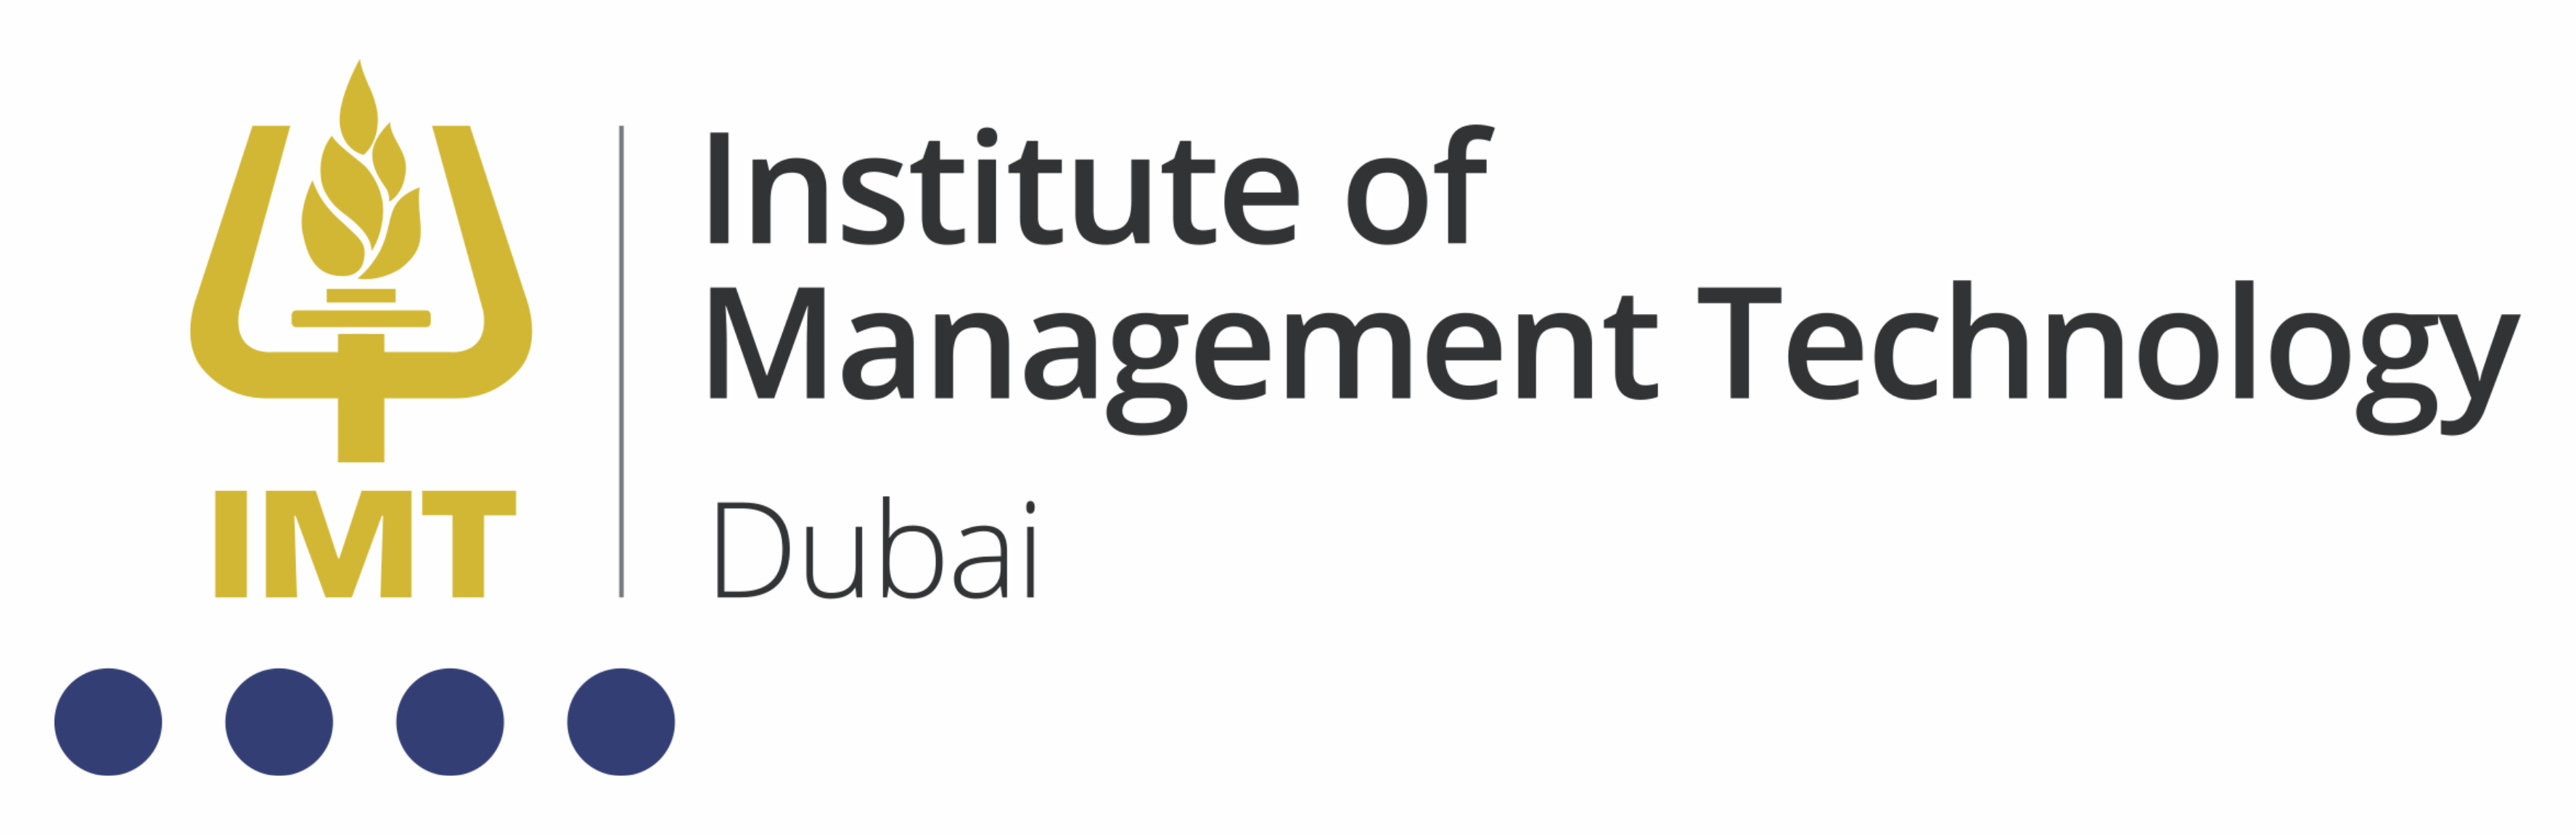 More about Institute of Management Technology Dubai